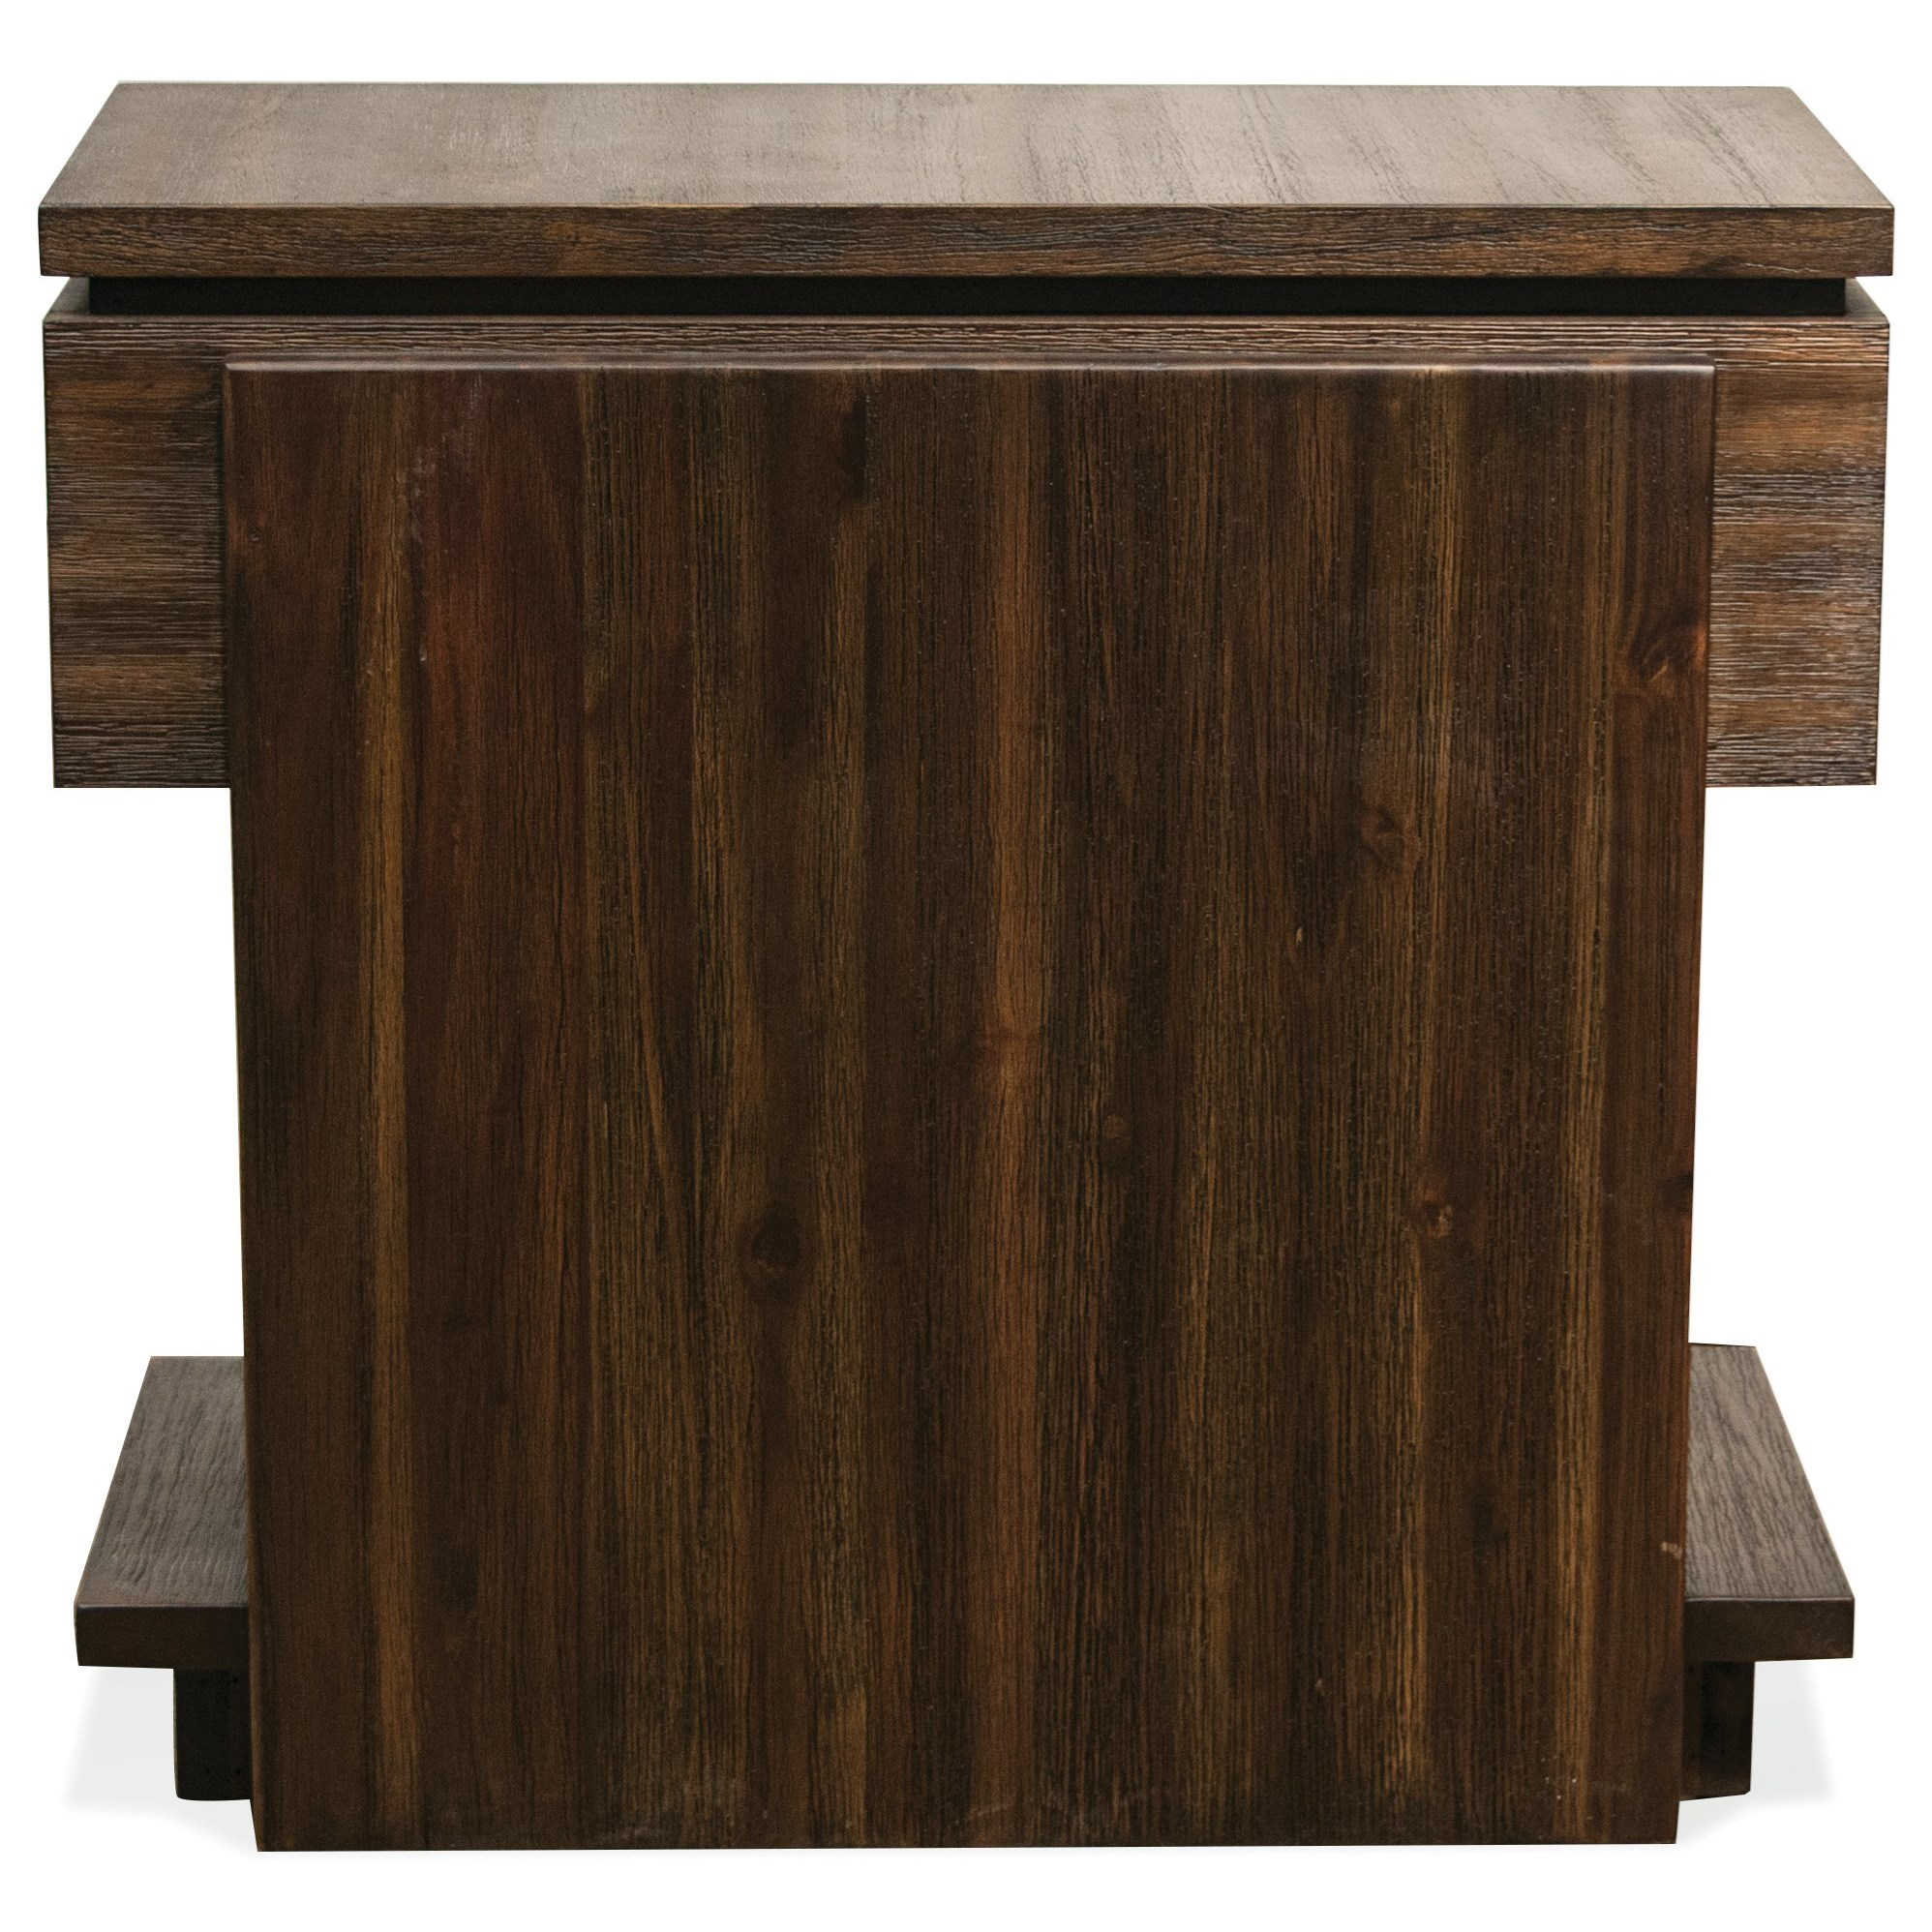 Riverside Furniture Modern Gatherings Contemporary Chairside Table In Brushed Acacia Finish